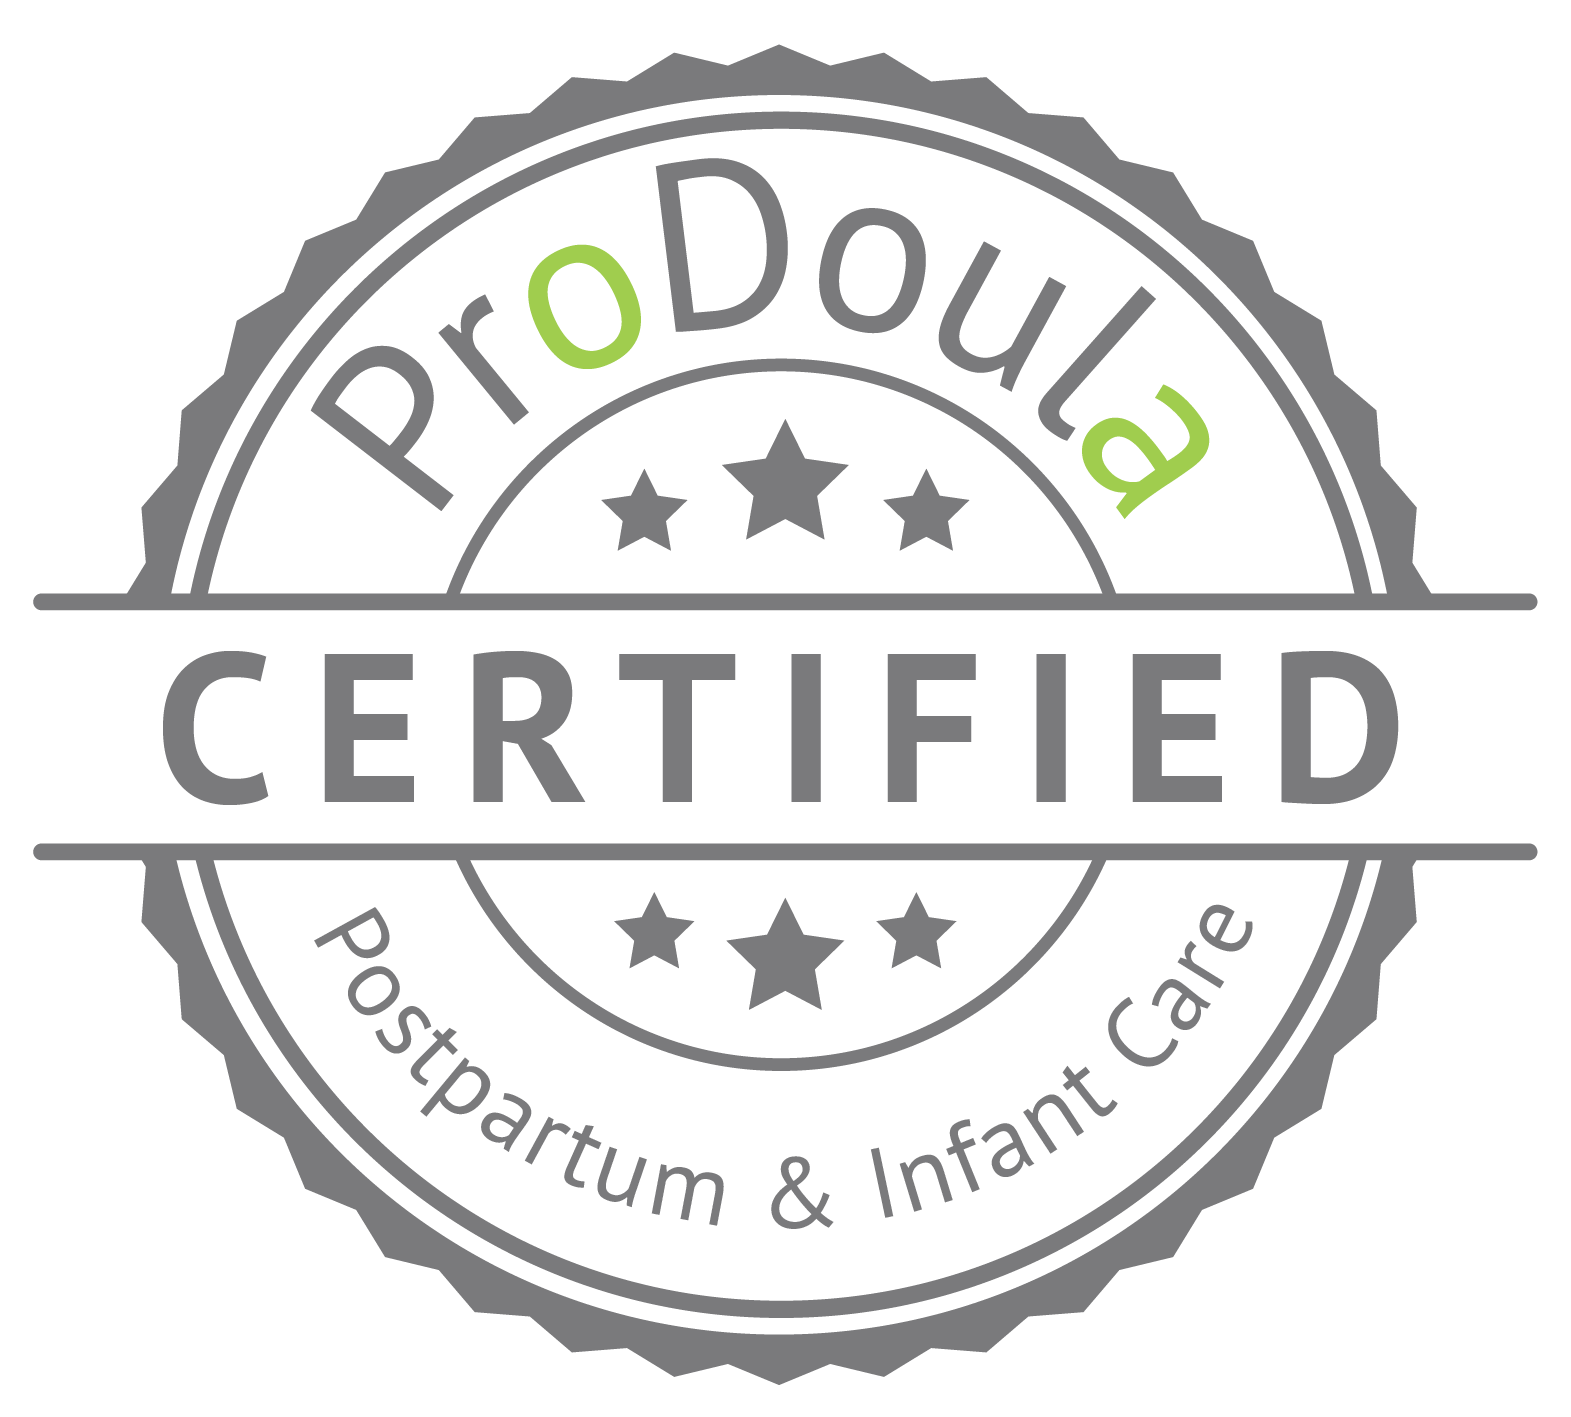 P&ICD-certified-badge